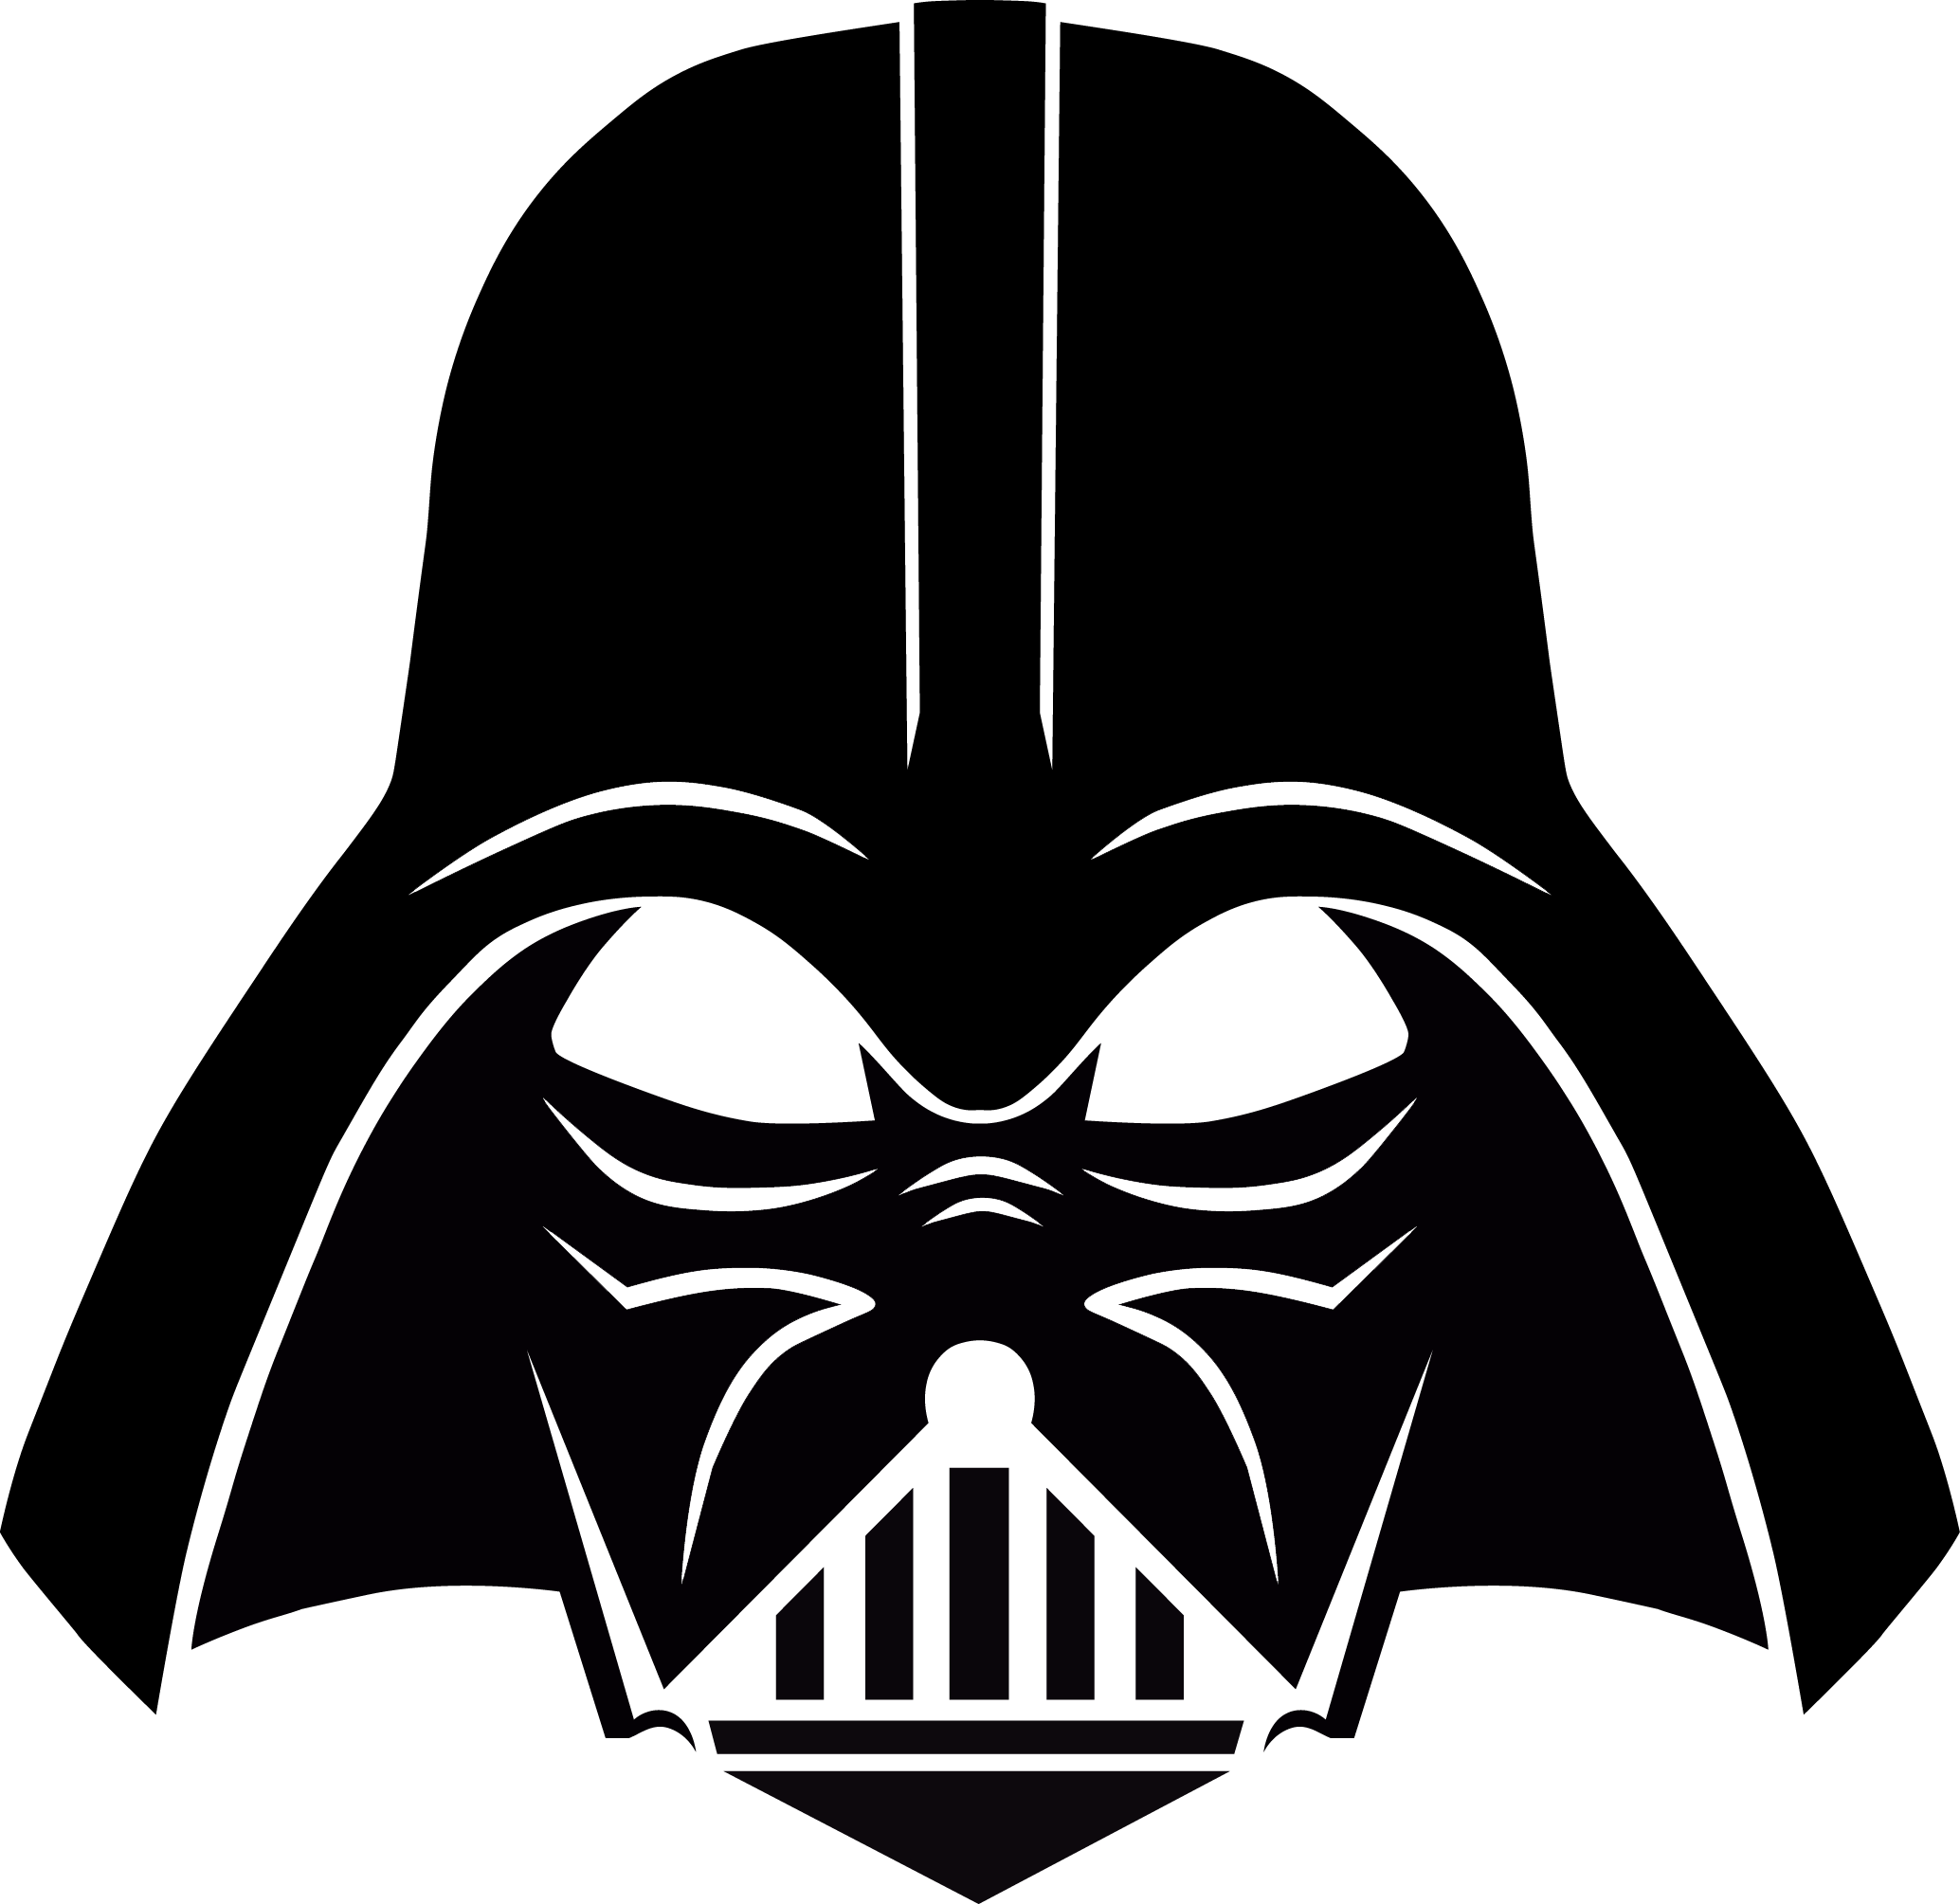 Vader clip darth. Stencil free download pinterest